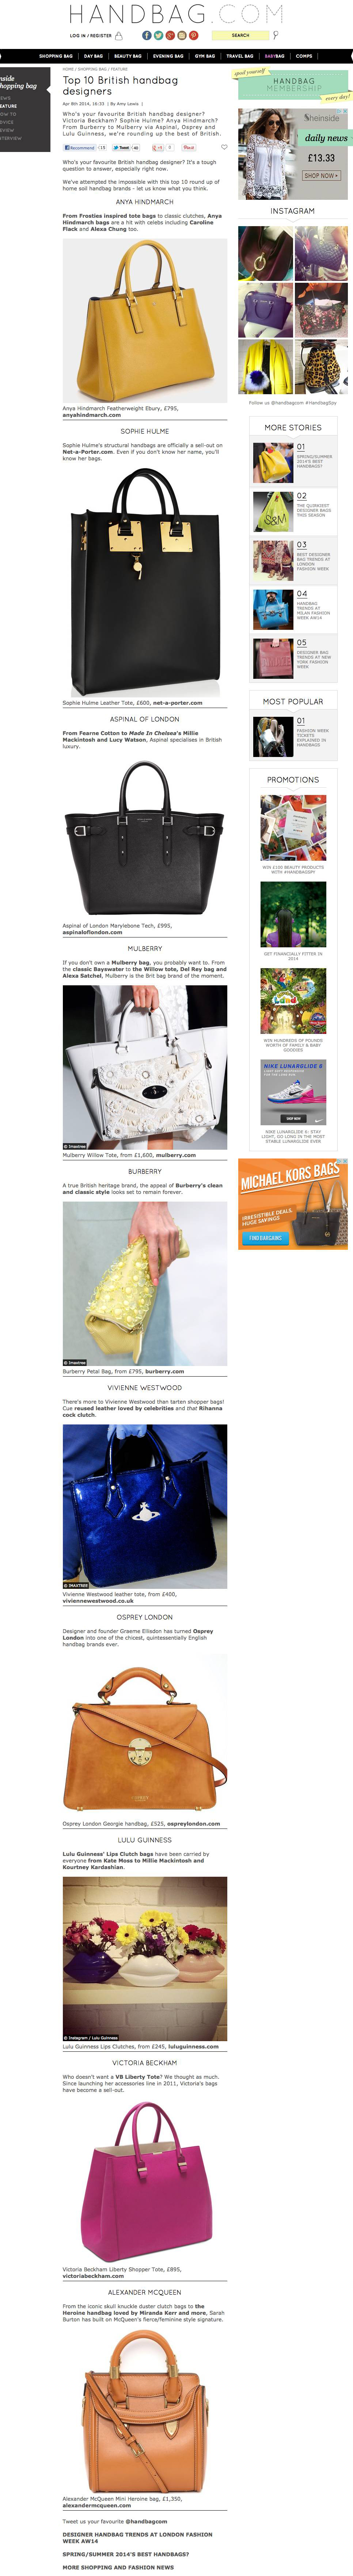 Top_10_British_handbag_designers_-_Shopping_Bag_Feature_-_handbag.com_-_2015-03-17_22.48.29.png